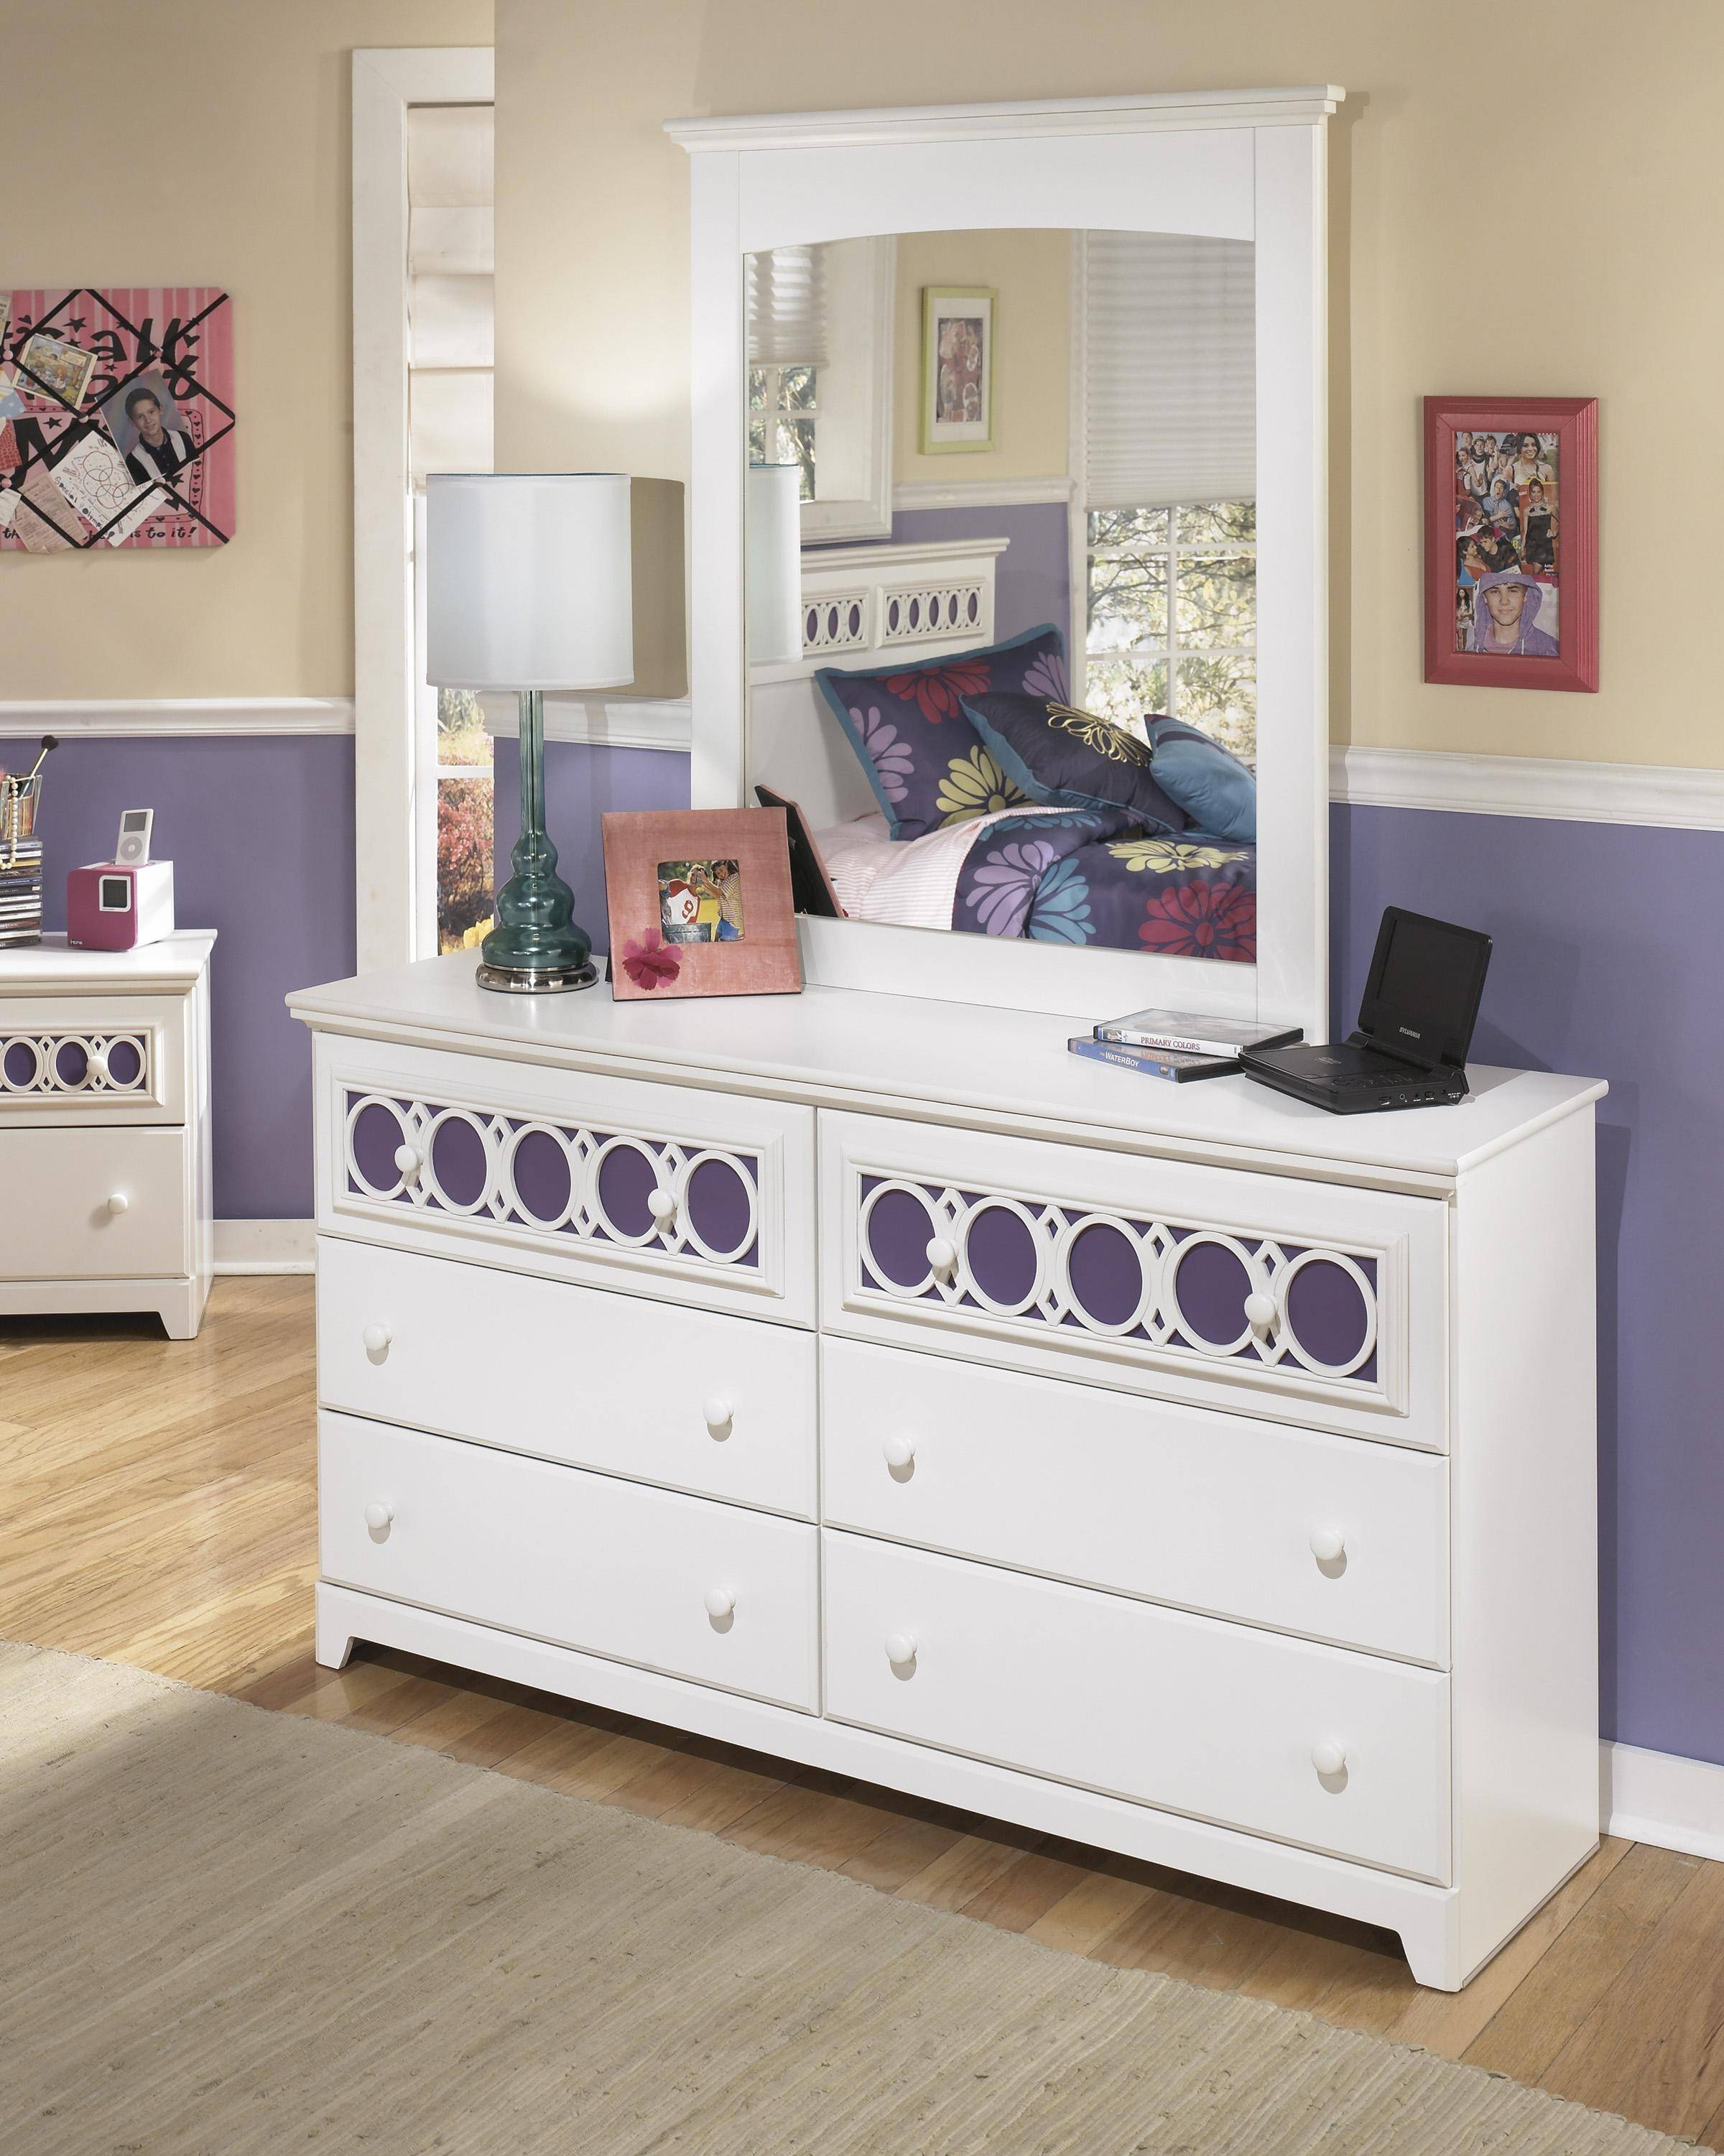 Ashley Zayley B131 Twin Size Panel Bedroom Set 6pcs In White B131 53 52 83 92 2 46 21 26 Buy